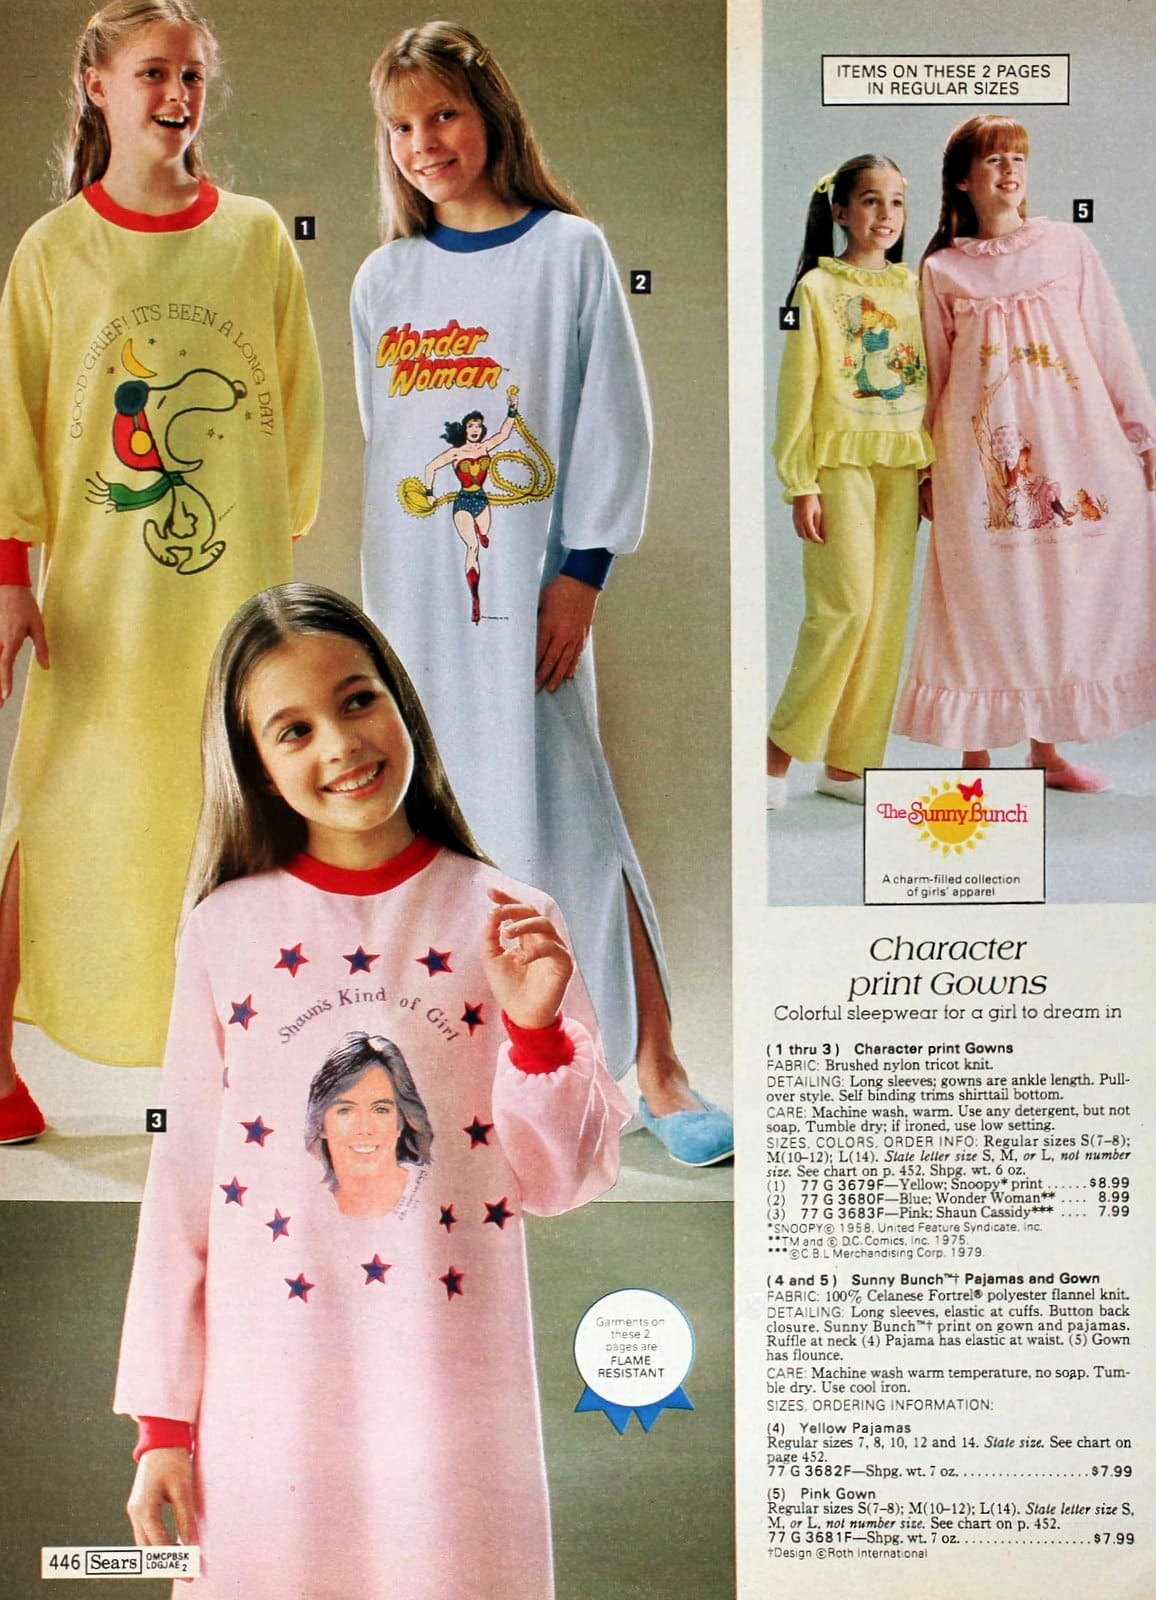 Vintage giirls nightgowns and pajama sets from the 1980s